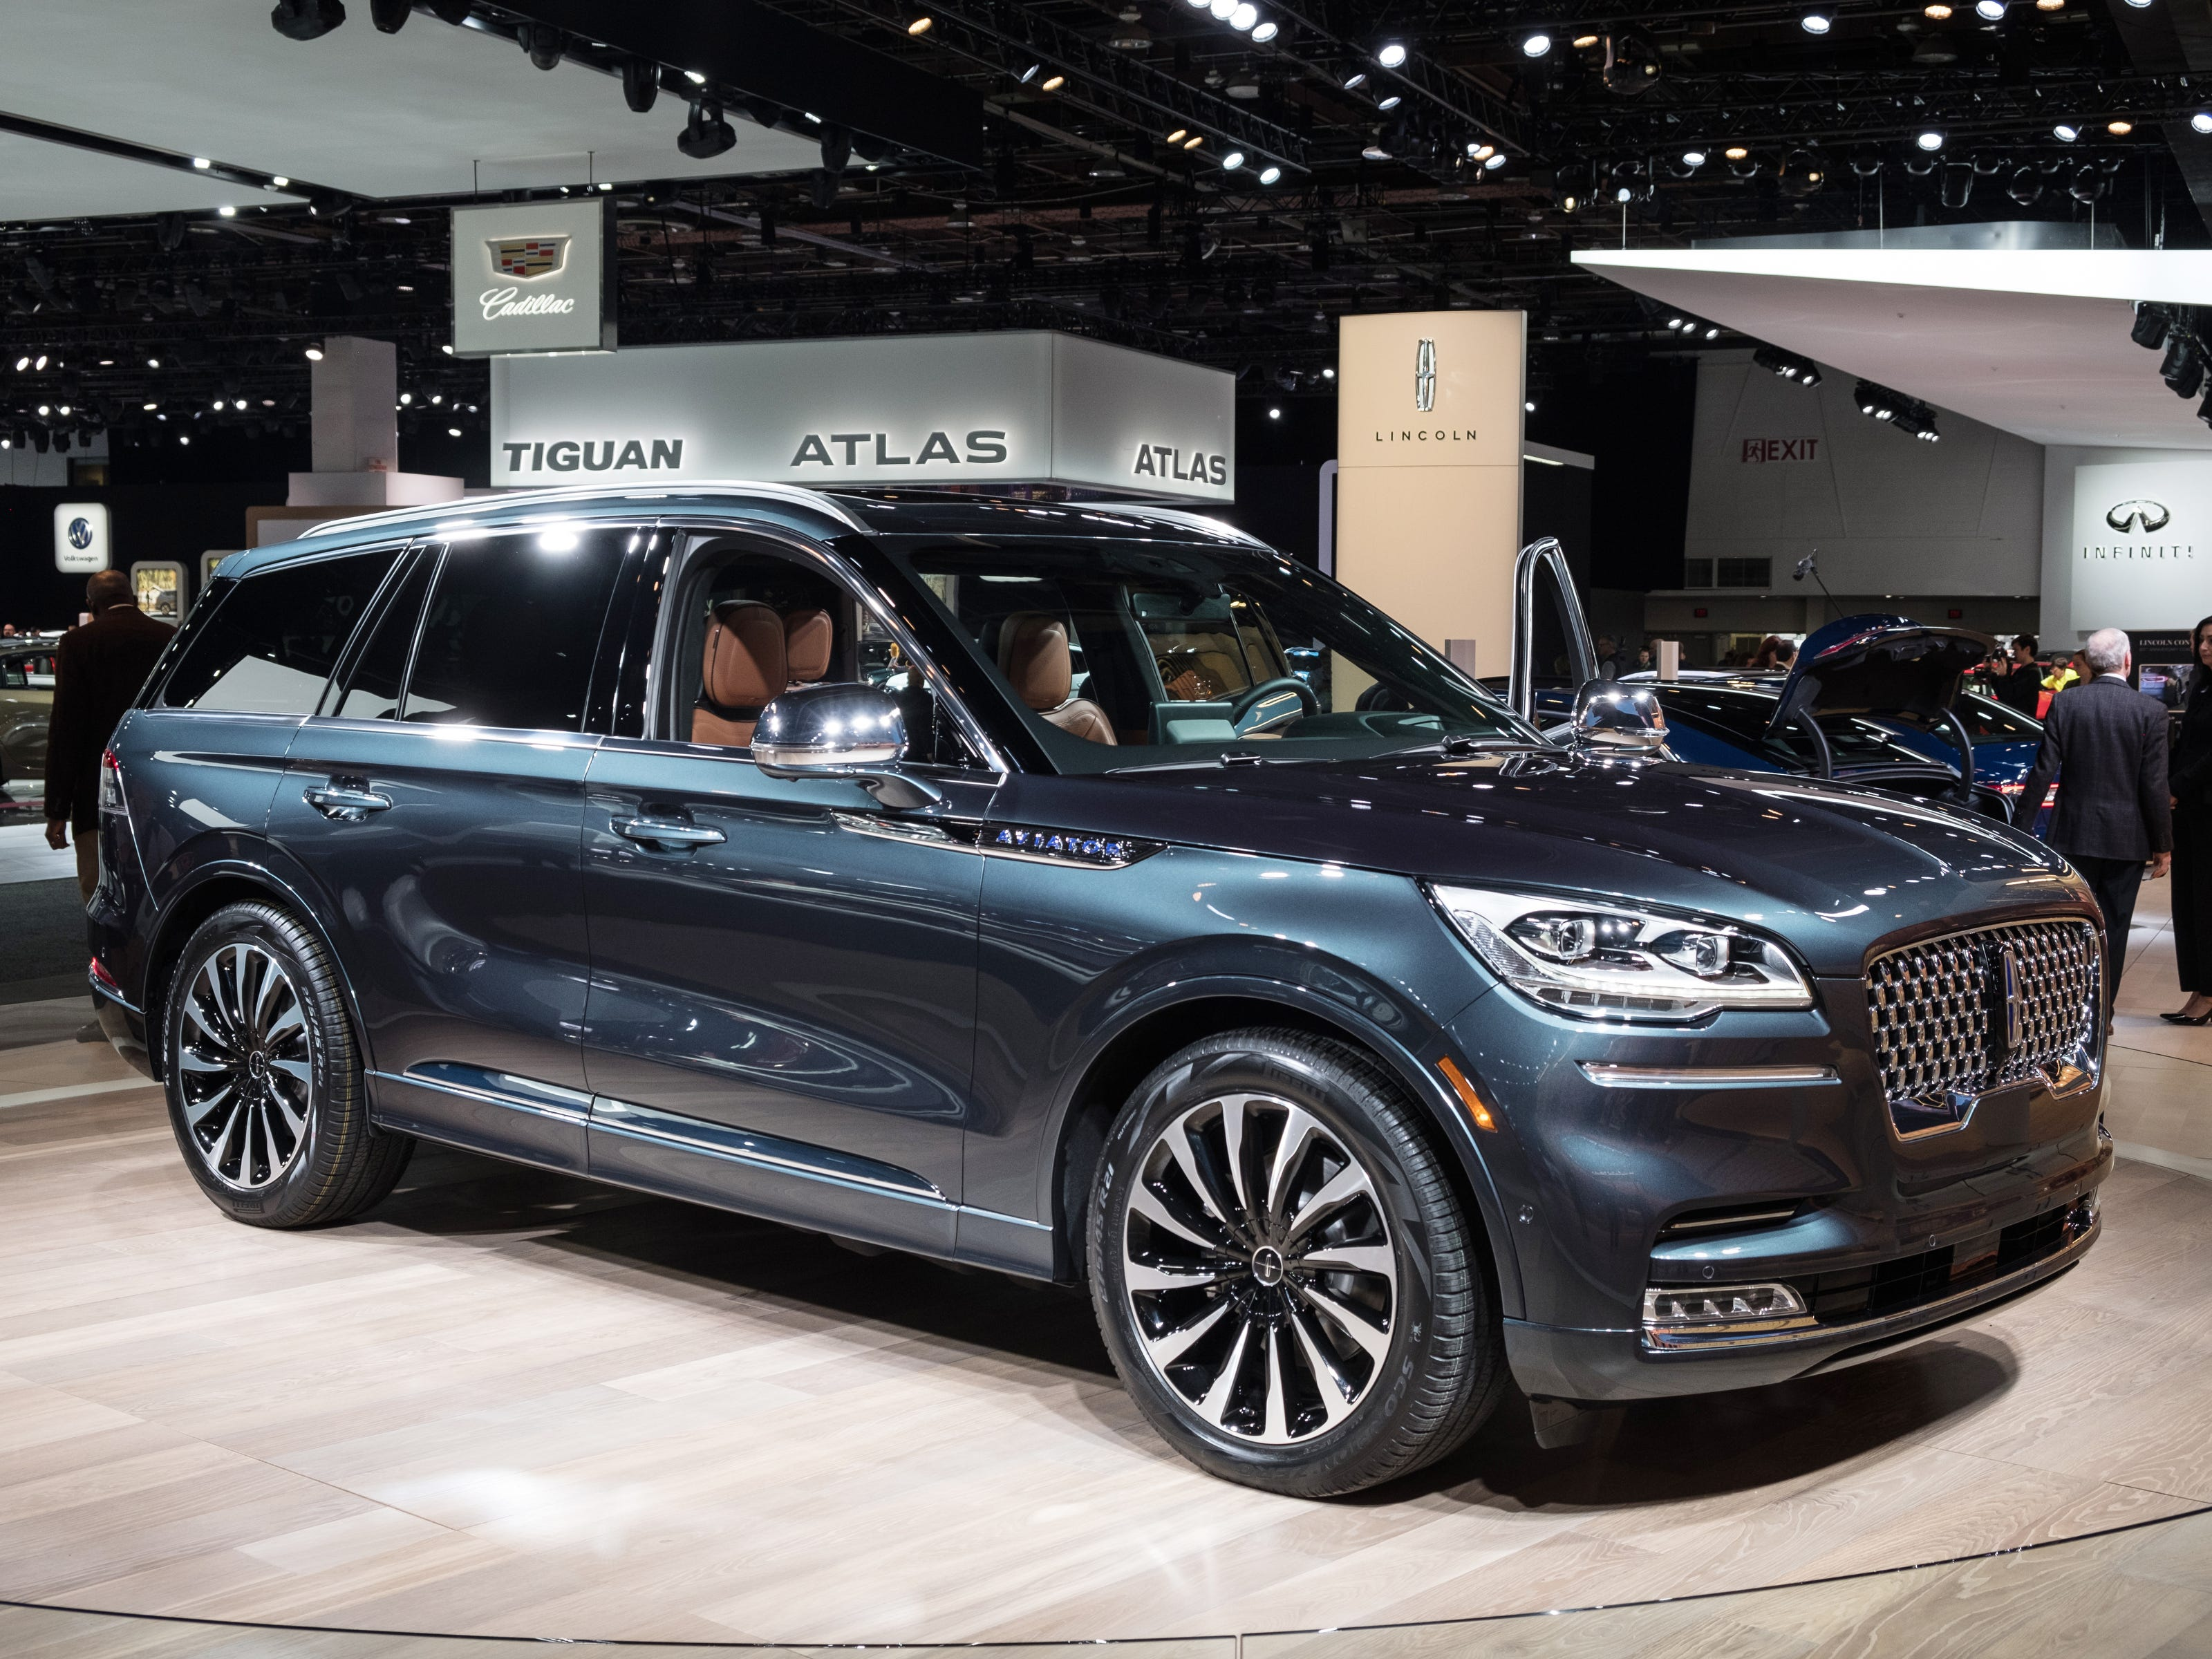 A 2020 Lincoln Aviator Plug-In Hybrid sits on display during the 2019 North American International Auto Show held at Cobo Center in downtown Detroit on Tuesday, Jan. 15, 2019.  (Via OlyDrop)